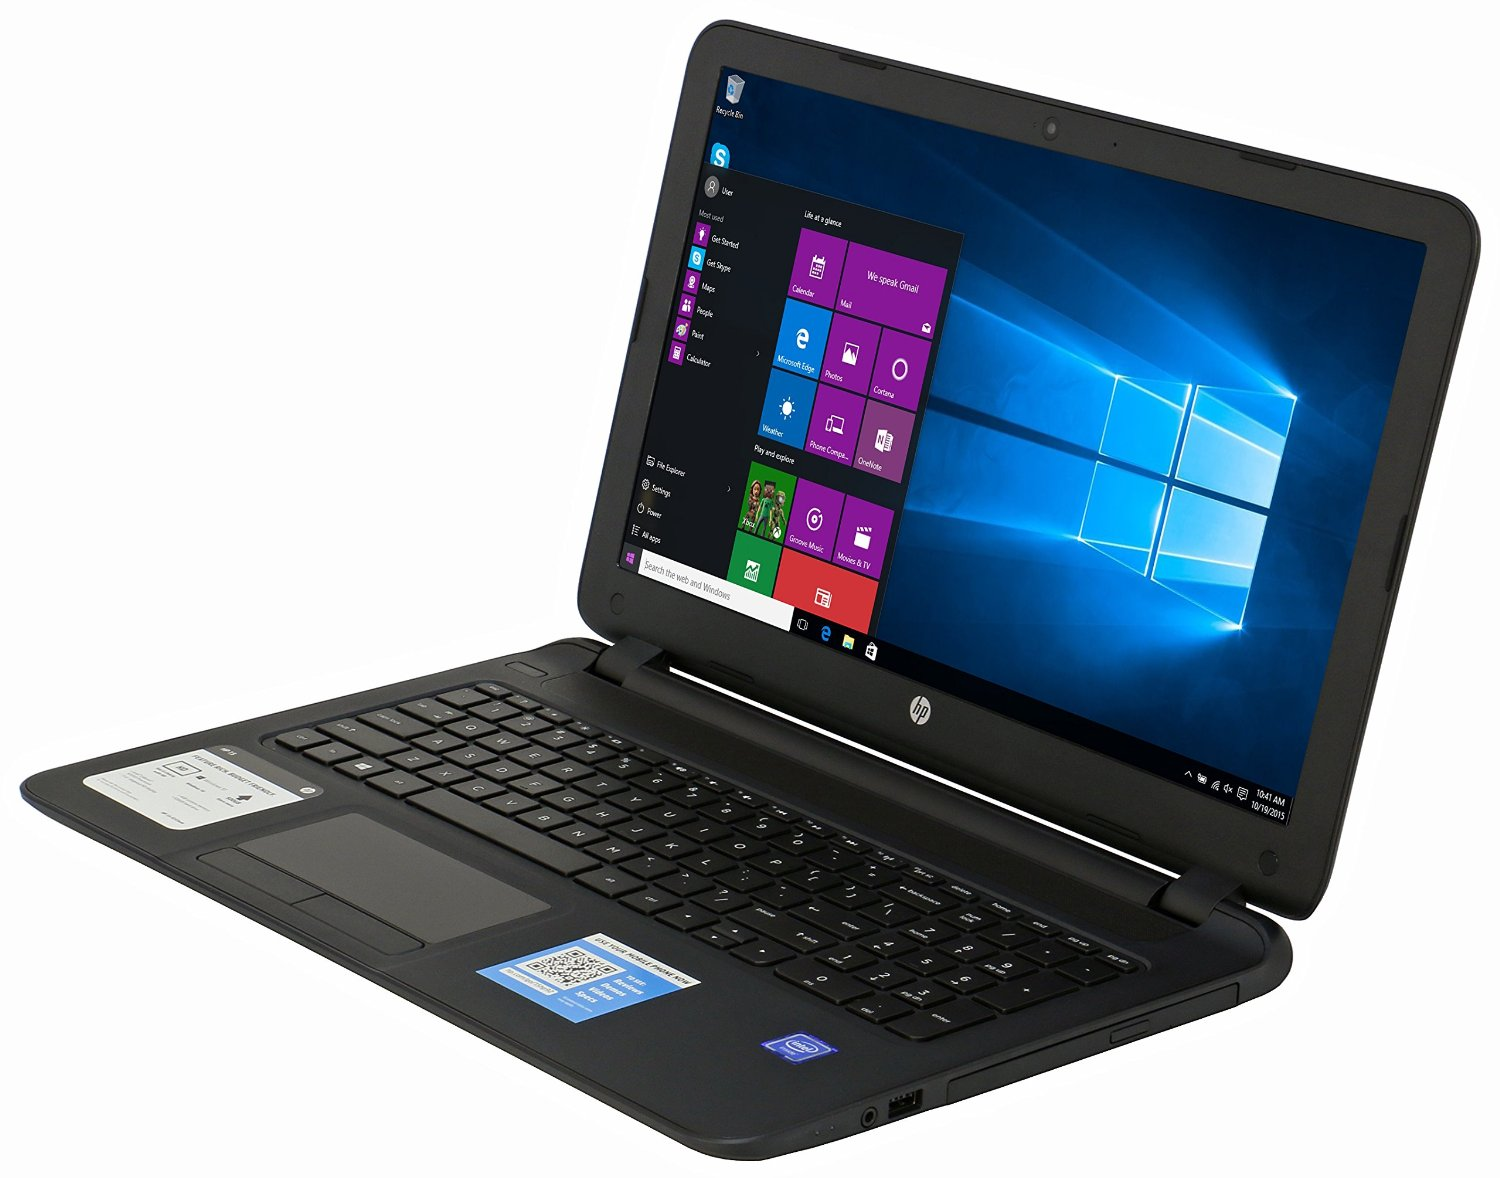 hp 15 f233wm laptop intel n3050 4gb 500gb dvd rw 15 6 hdmi windows 10 ebay. Black Bedroom Furniture Sets. Home Design Ideas